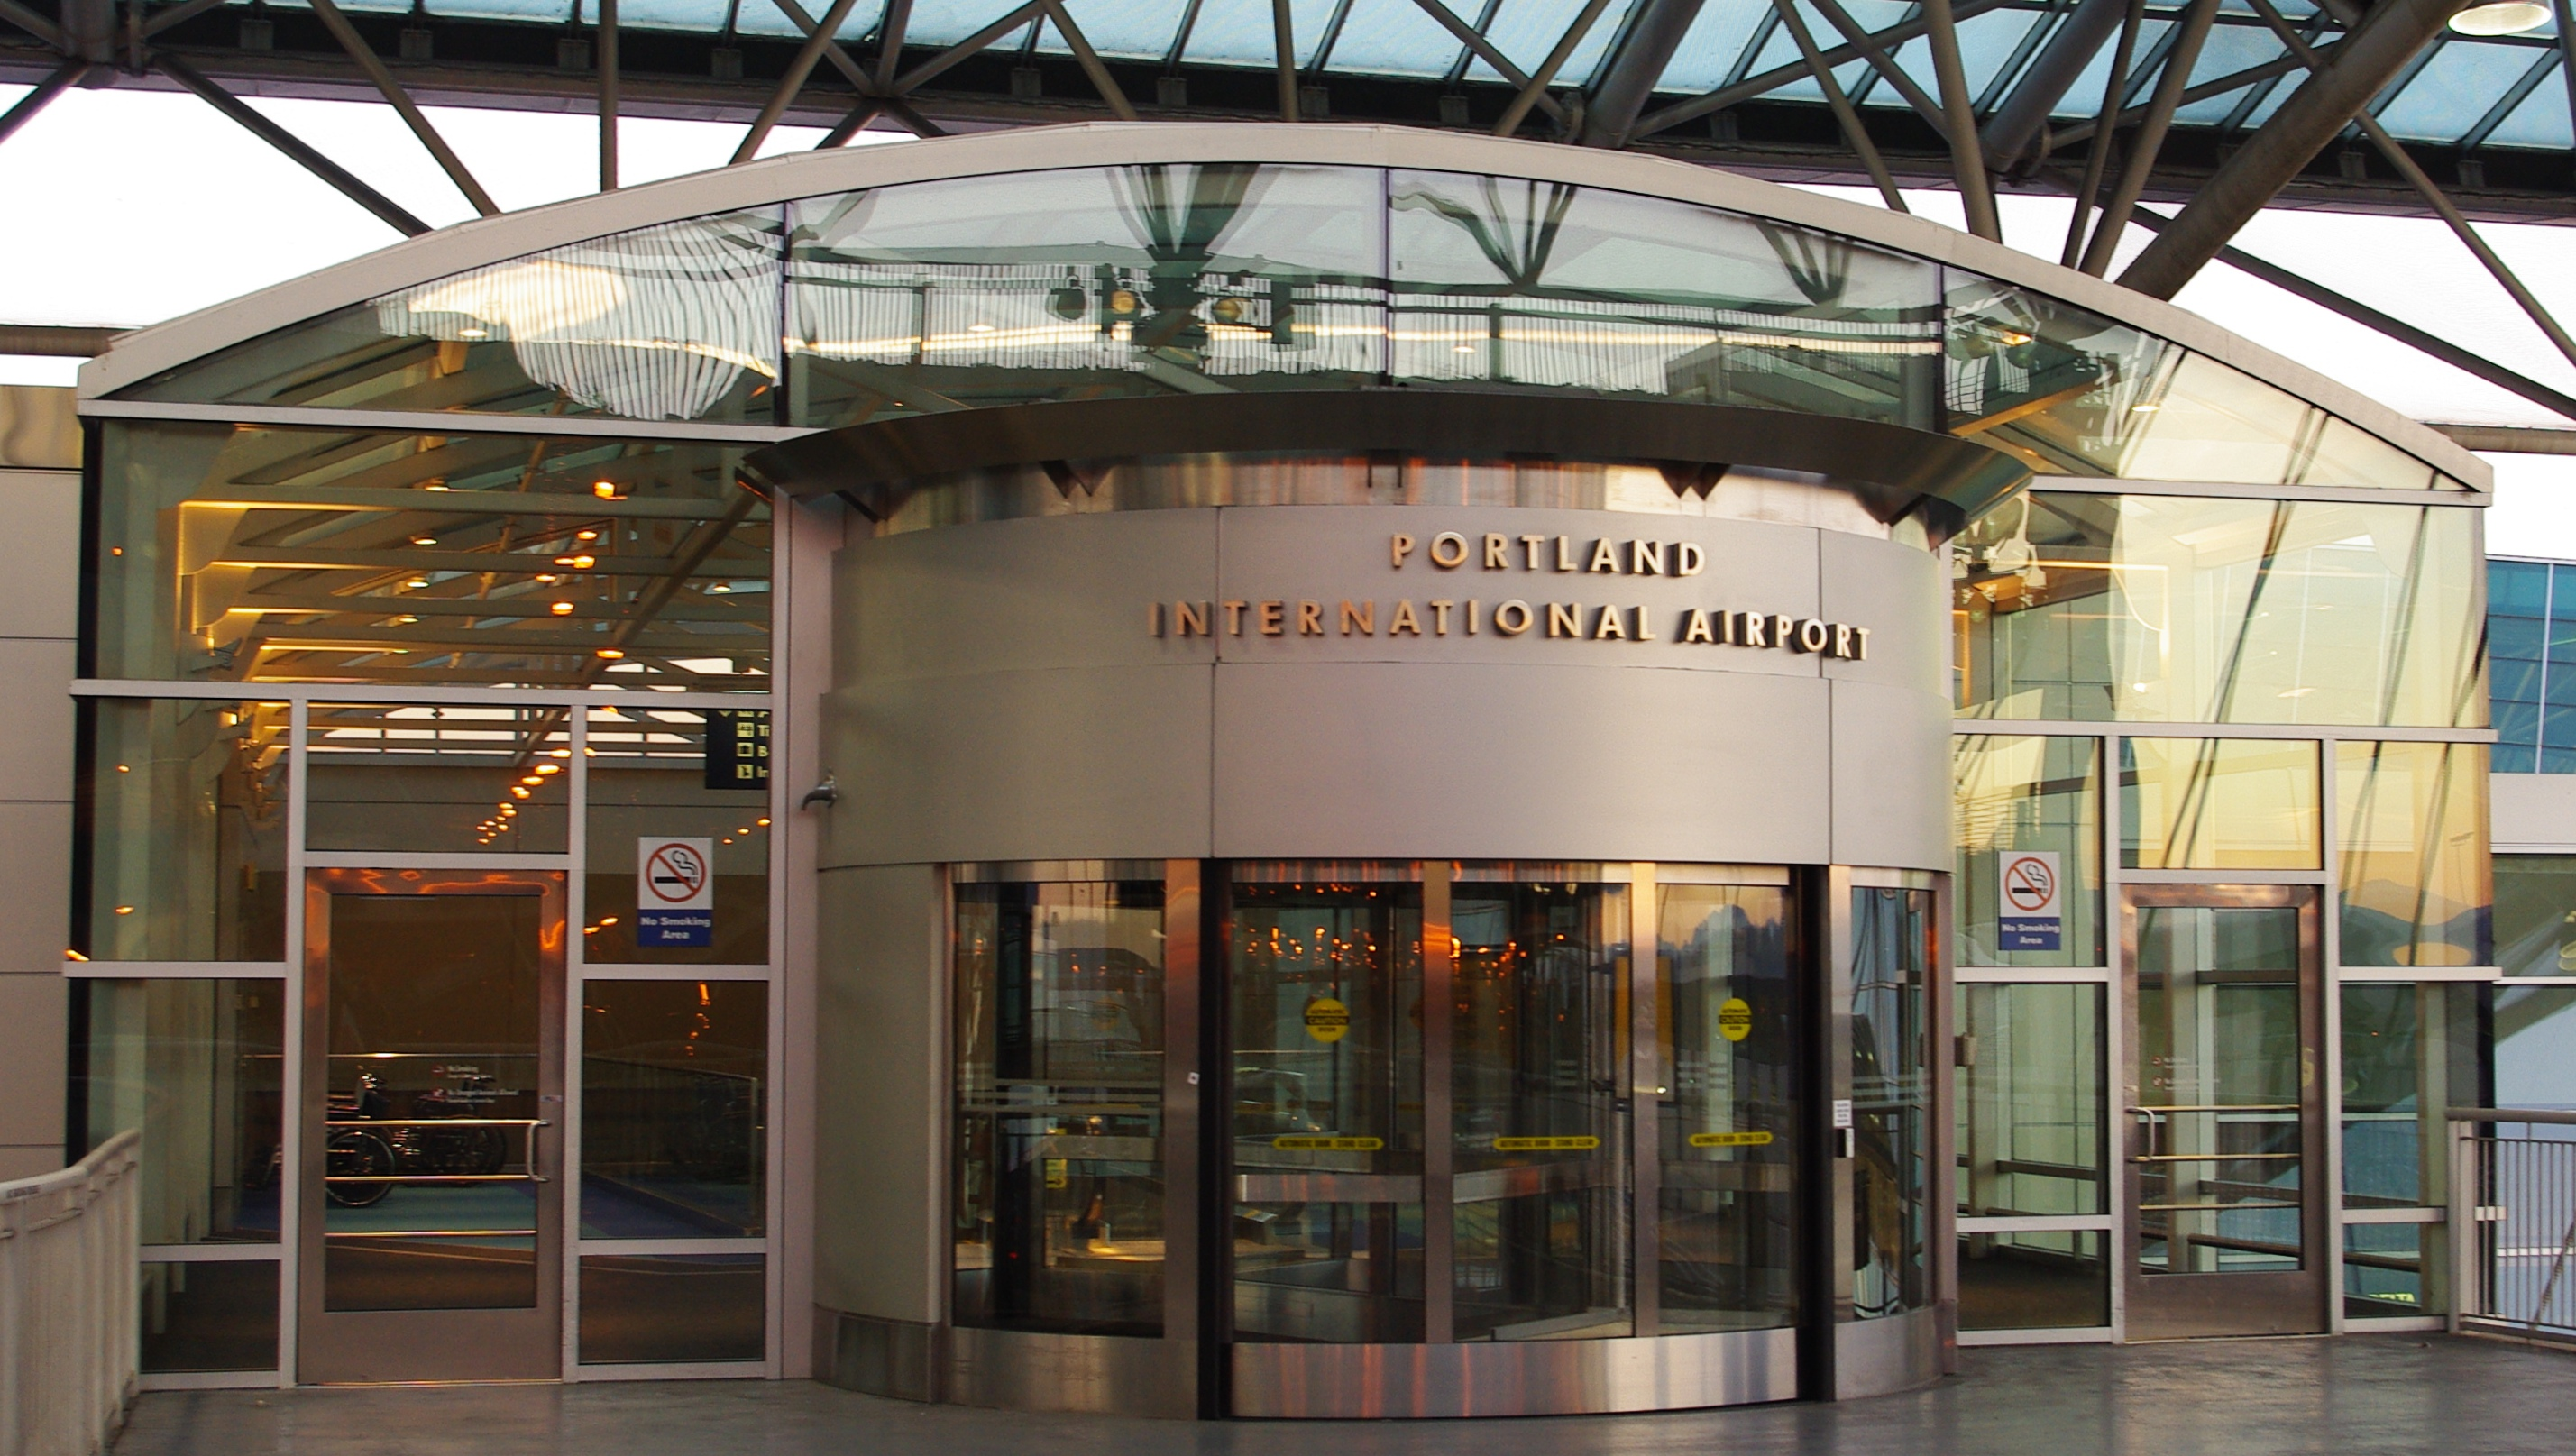 FilePortland International Airport revolving door - Oregon.JPG & File:Portland International Airport revolving door - Oregon.JPG ...